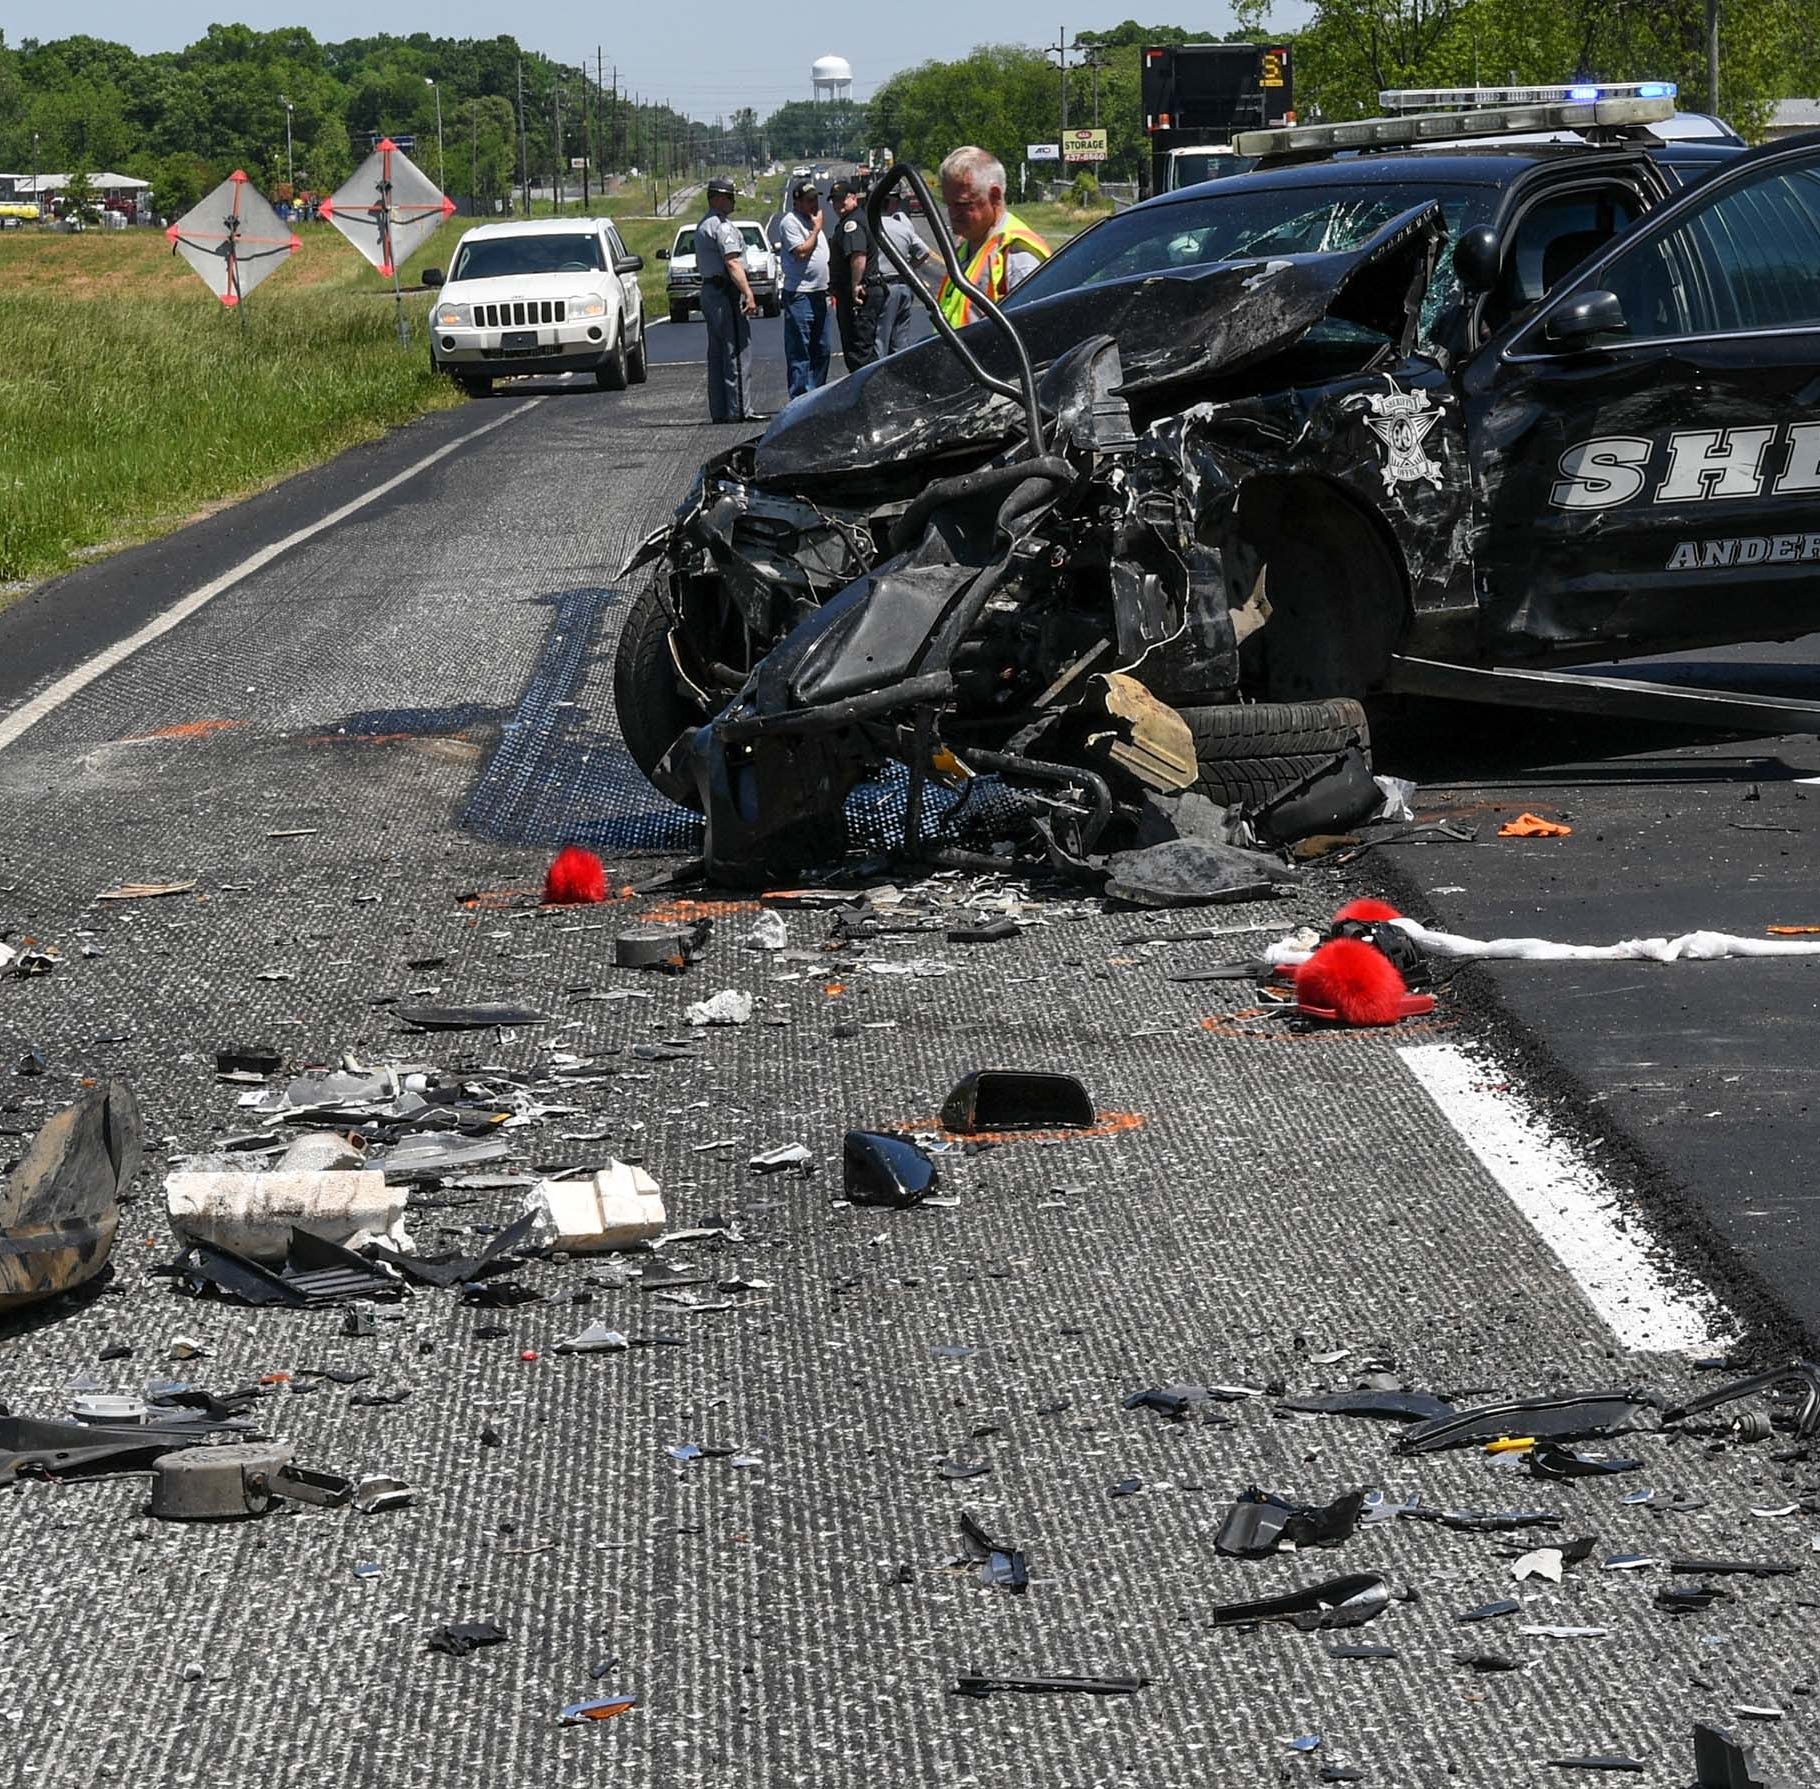 Anderson County sheriff's deputy involved in three-car crash; lanes shut down